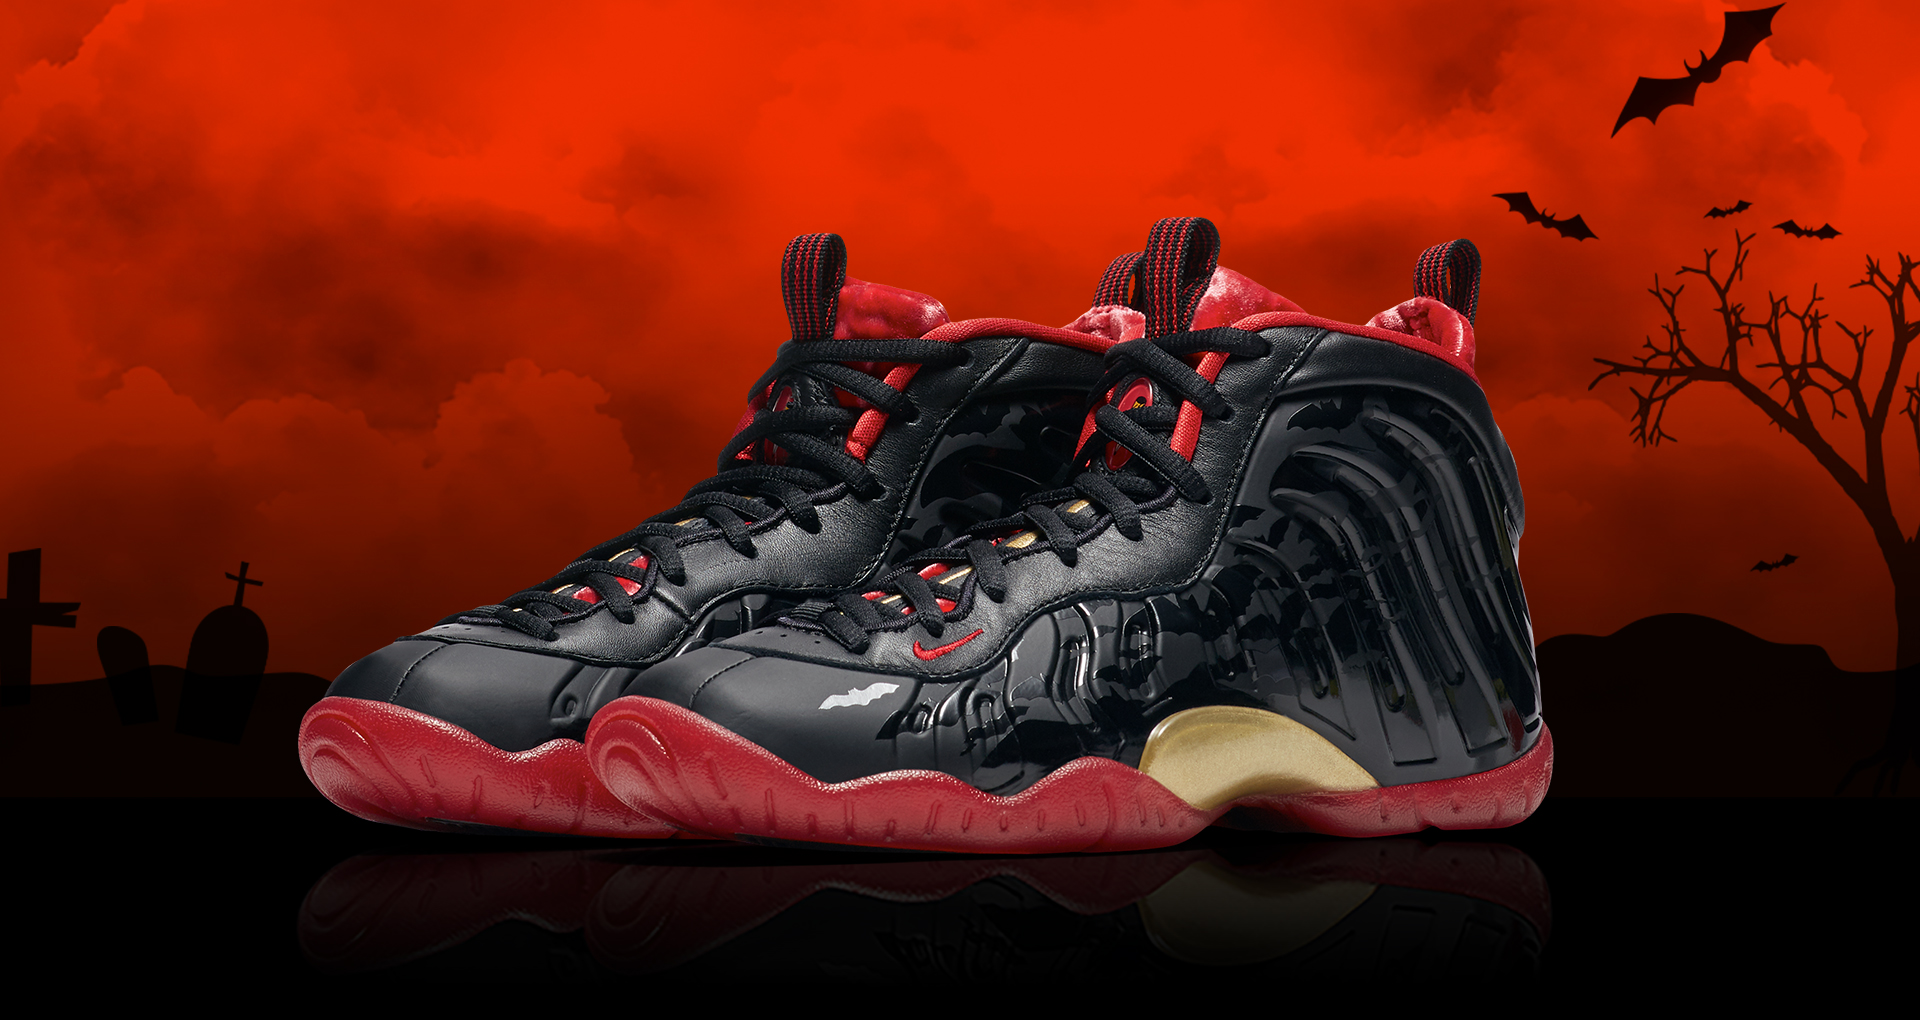 03057c366d5 Nike Little Posite One Color  Black University Red-Metallic Gold Style  Code  846077-003. Release Date  10 13 2017. Price   180.00